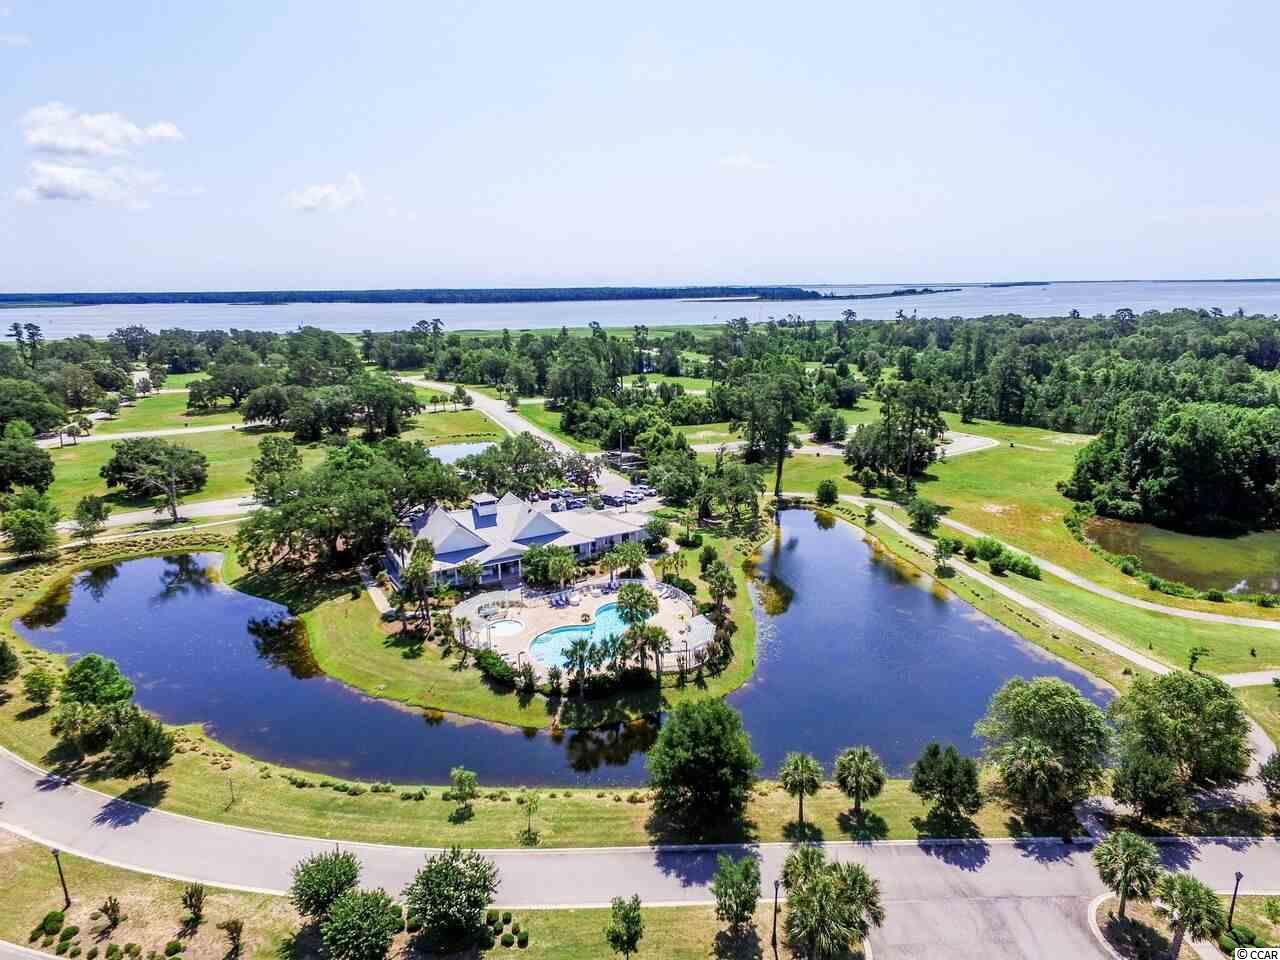 PRICE REDUCED!!!  South Island Plantation...A gated community located along Winyah Bay and the Intracoastal Waterway, near Historic Georgetown, SC.  Community amenities include a pool, kiddie pool and hot tub. There is also a 5000 sq ft club house with an equipped fitness center, a bar and a full kitchen.  Walking trails wind throughout the community with gazebos for periodic resting.  A secured RV/ Boat storage area is available for property owners.  Build your dream home today....